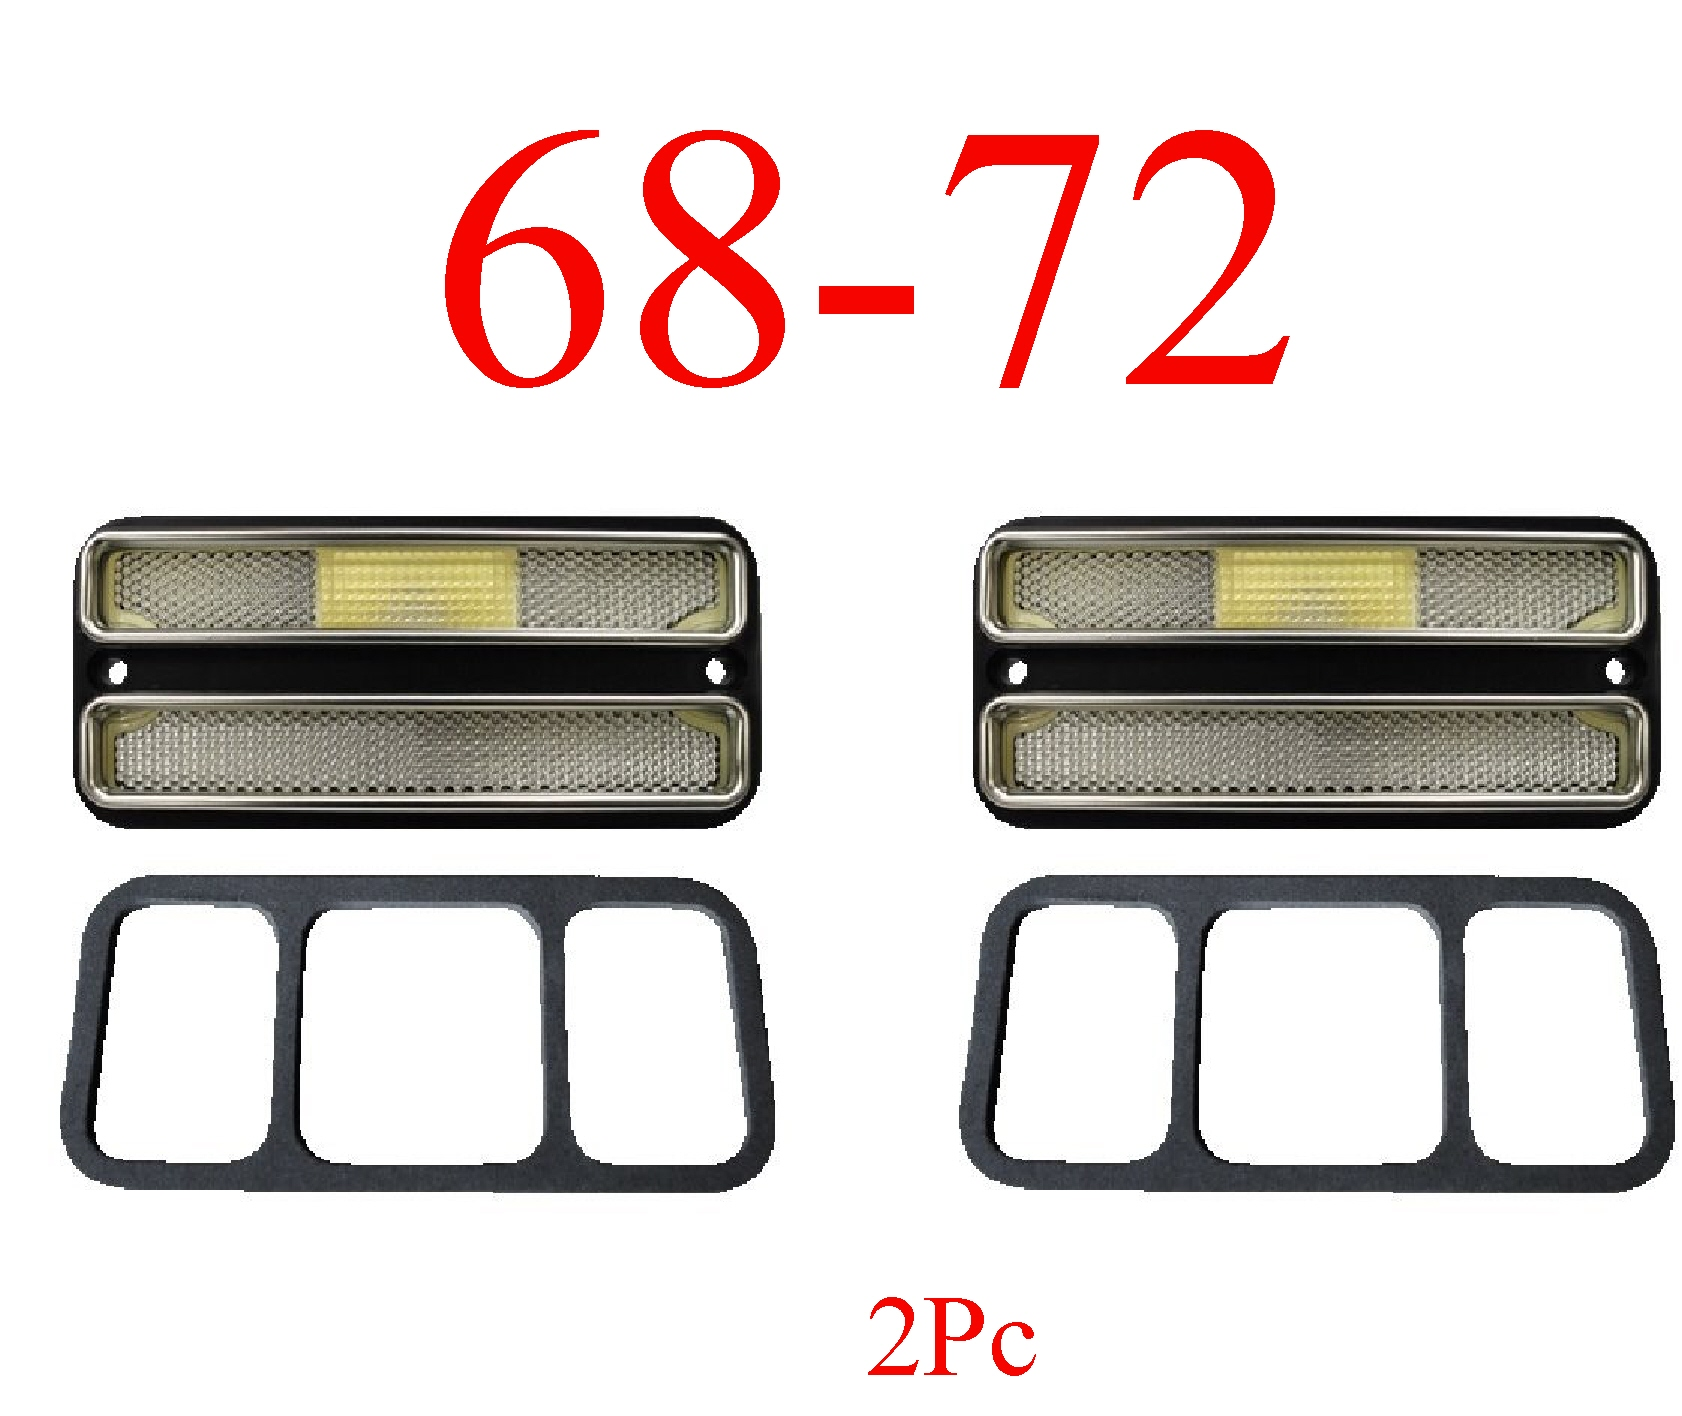 68-72 Chevy 2Pc Clear Rear Deluxe Side Lights